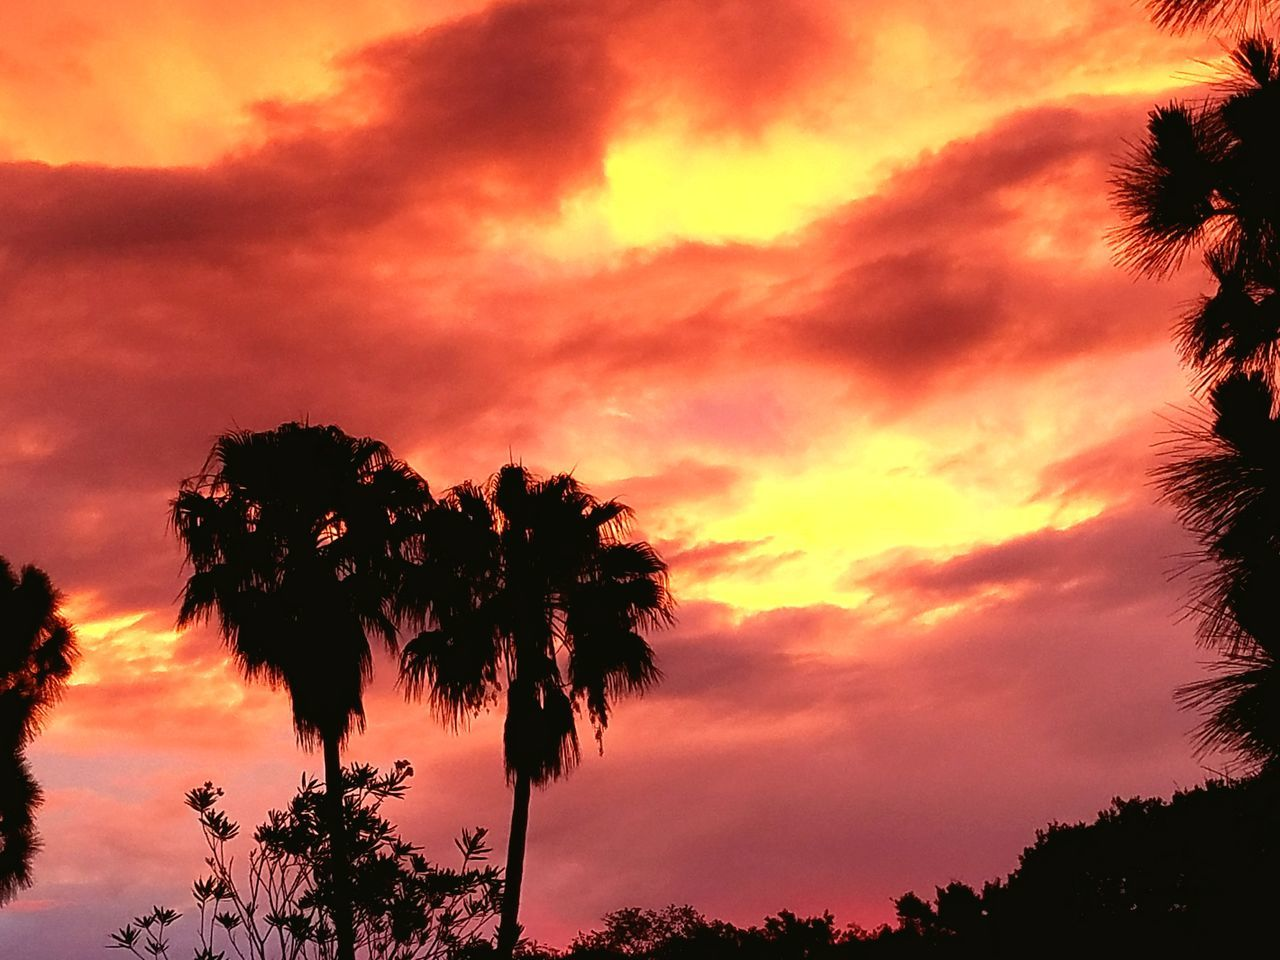 tree, sunset, sky, beauty in nature, palm tree, scenics, nature, silhouette, cloud - sky, tranquility, orange color, tranquil scene, low angle view, no people, dramatic sky, growth, outdoors, tree trunk, day